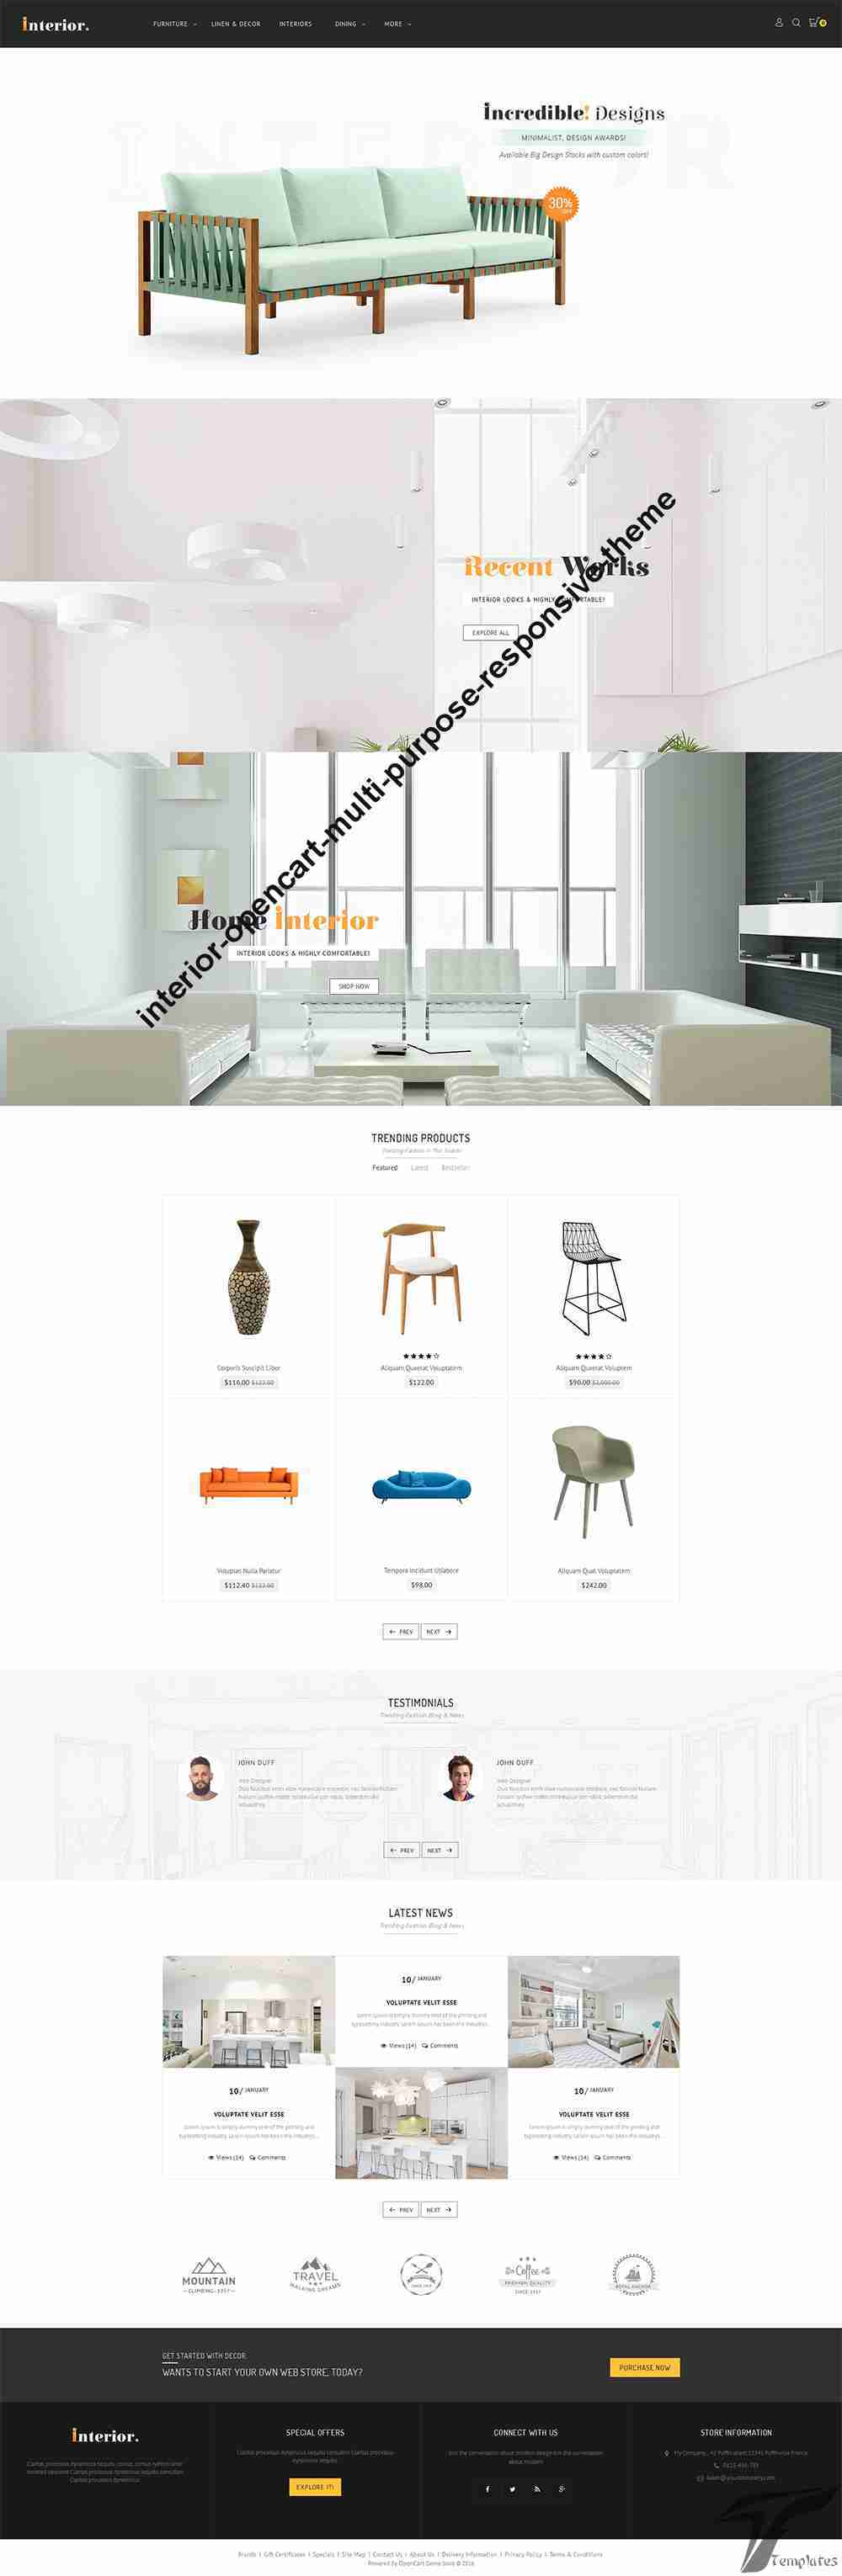 https://images.besthemes.com/images/h1_interior-opencart-multi-purpose-responsive-theme8-_-196005198/07.Parallax-Layout.jpg